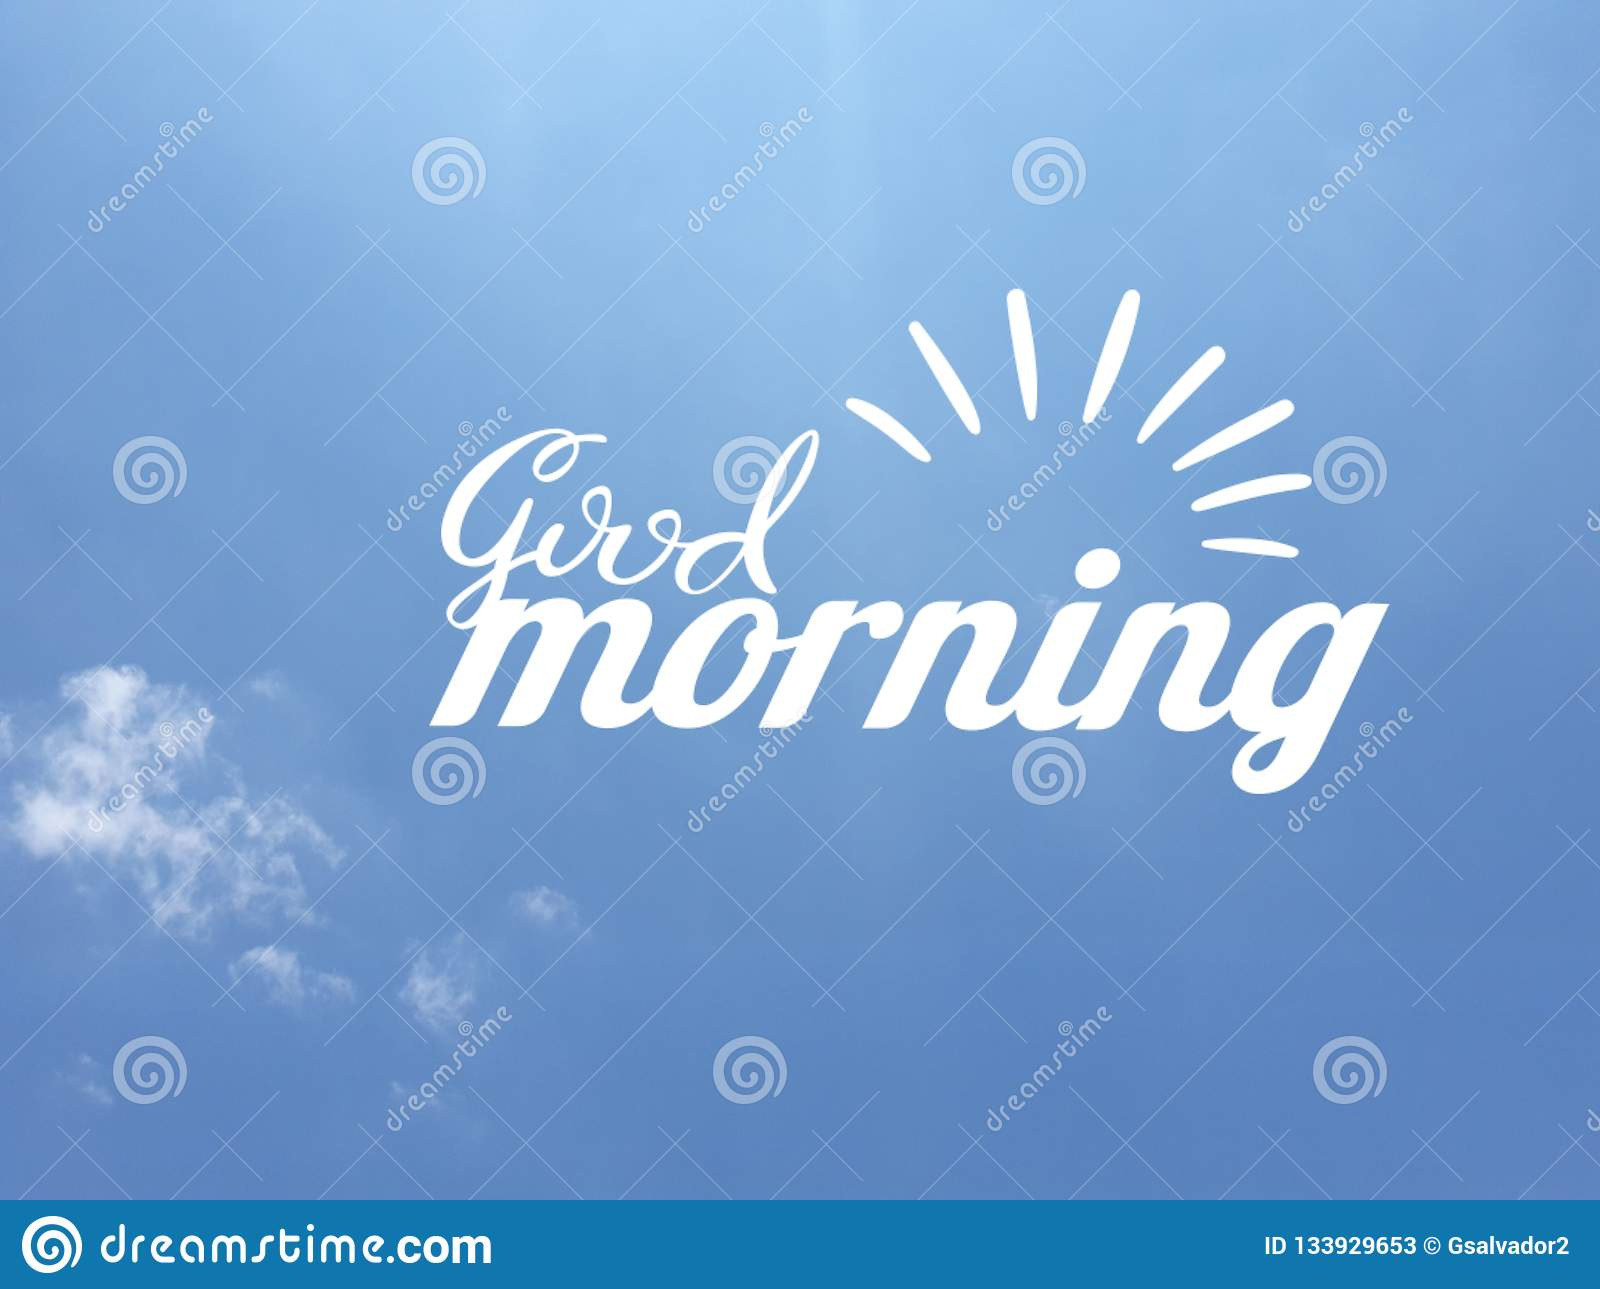 Good Morning Message In White Color On Blue Sky Background Stock